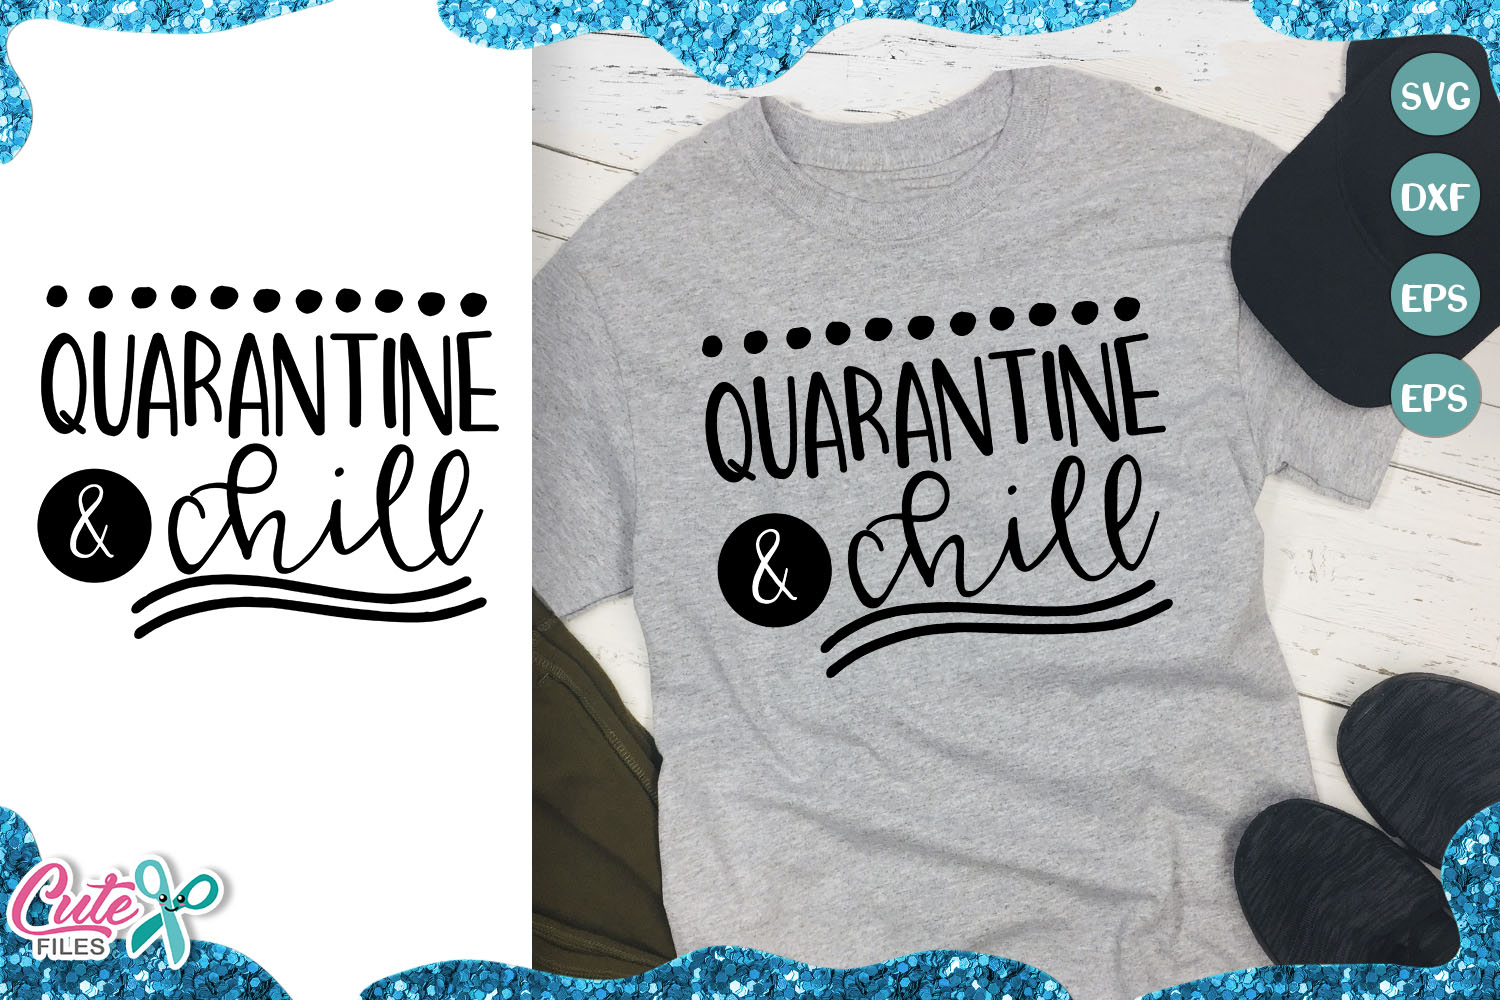 Quarantine And Chill Svg For Craftters Graphic By Cute Files